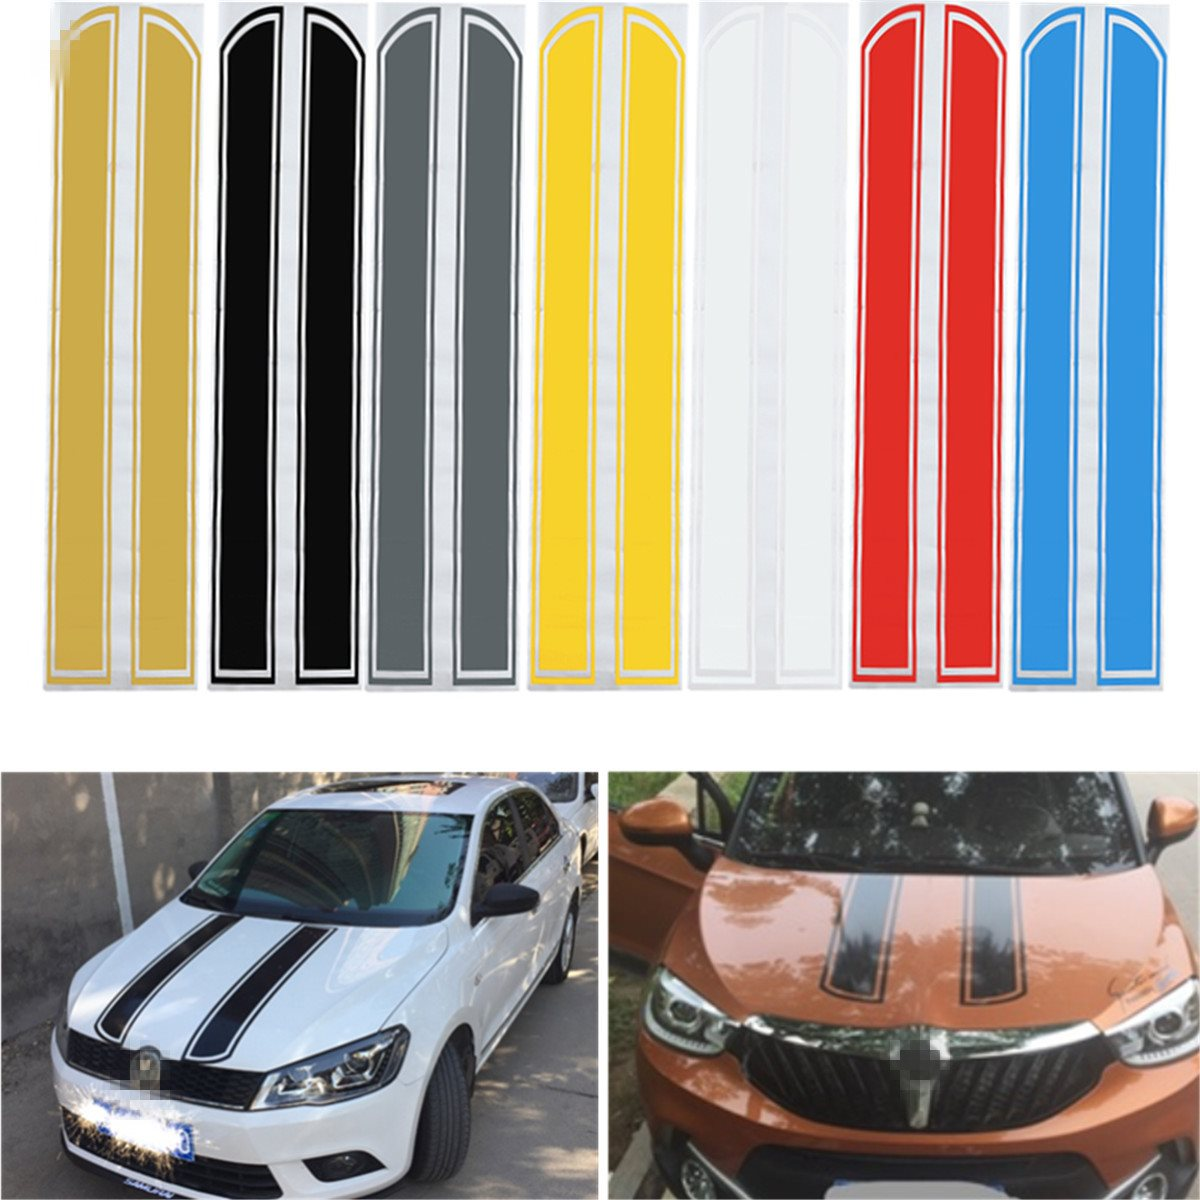 Car sticker design penang - Universal 130cm X 24cm Car Auto Hood Scratched Stickers Engine Cover Styling Reflective Decal Stripe For